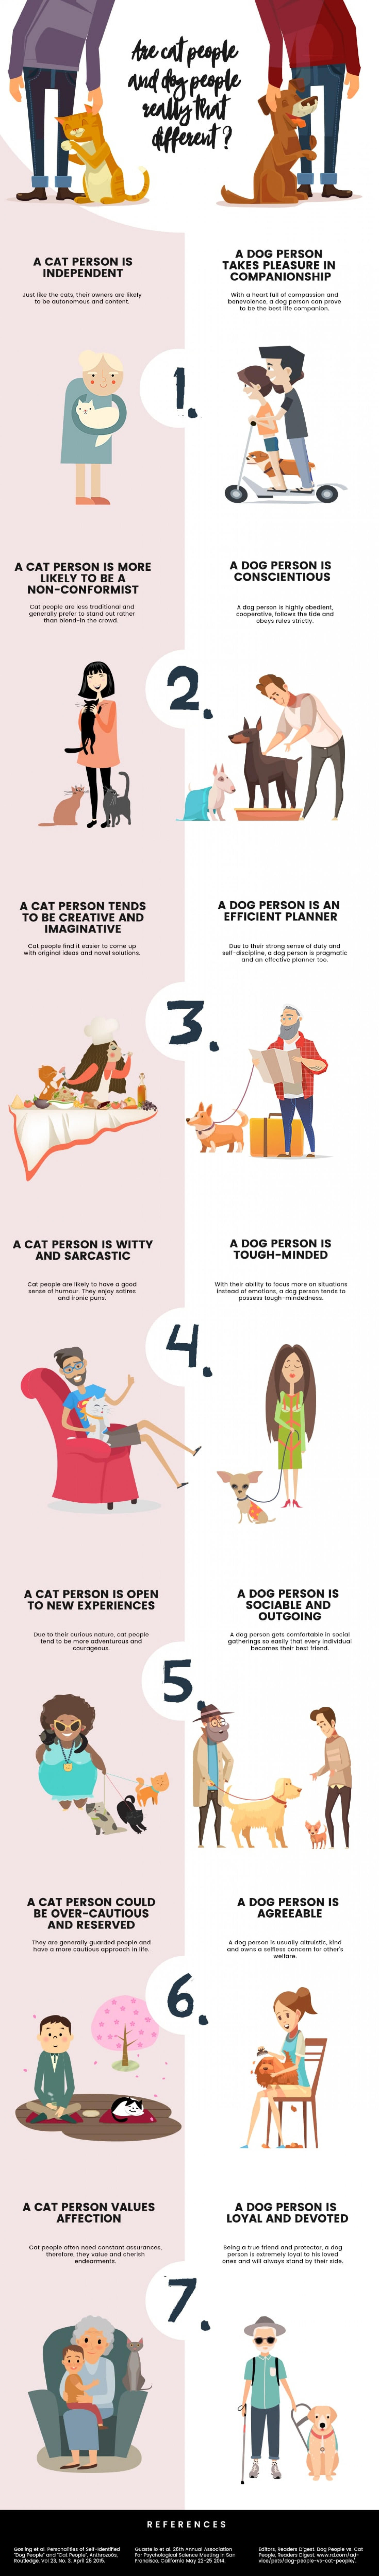 Are you a cat person or a dog person? Infographic